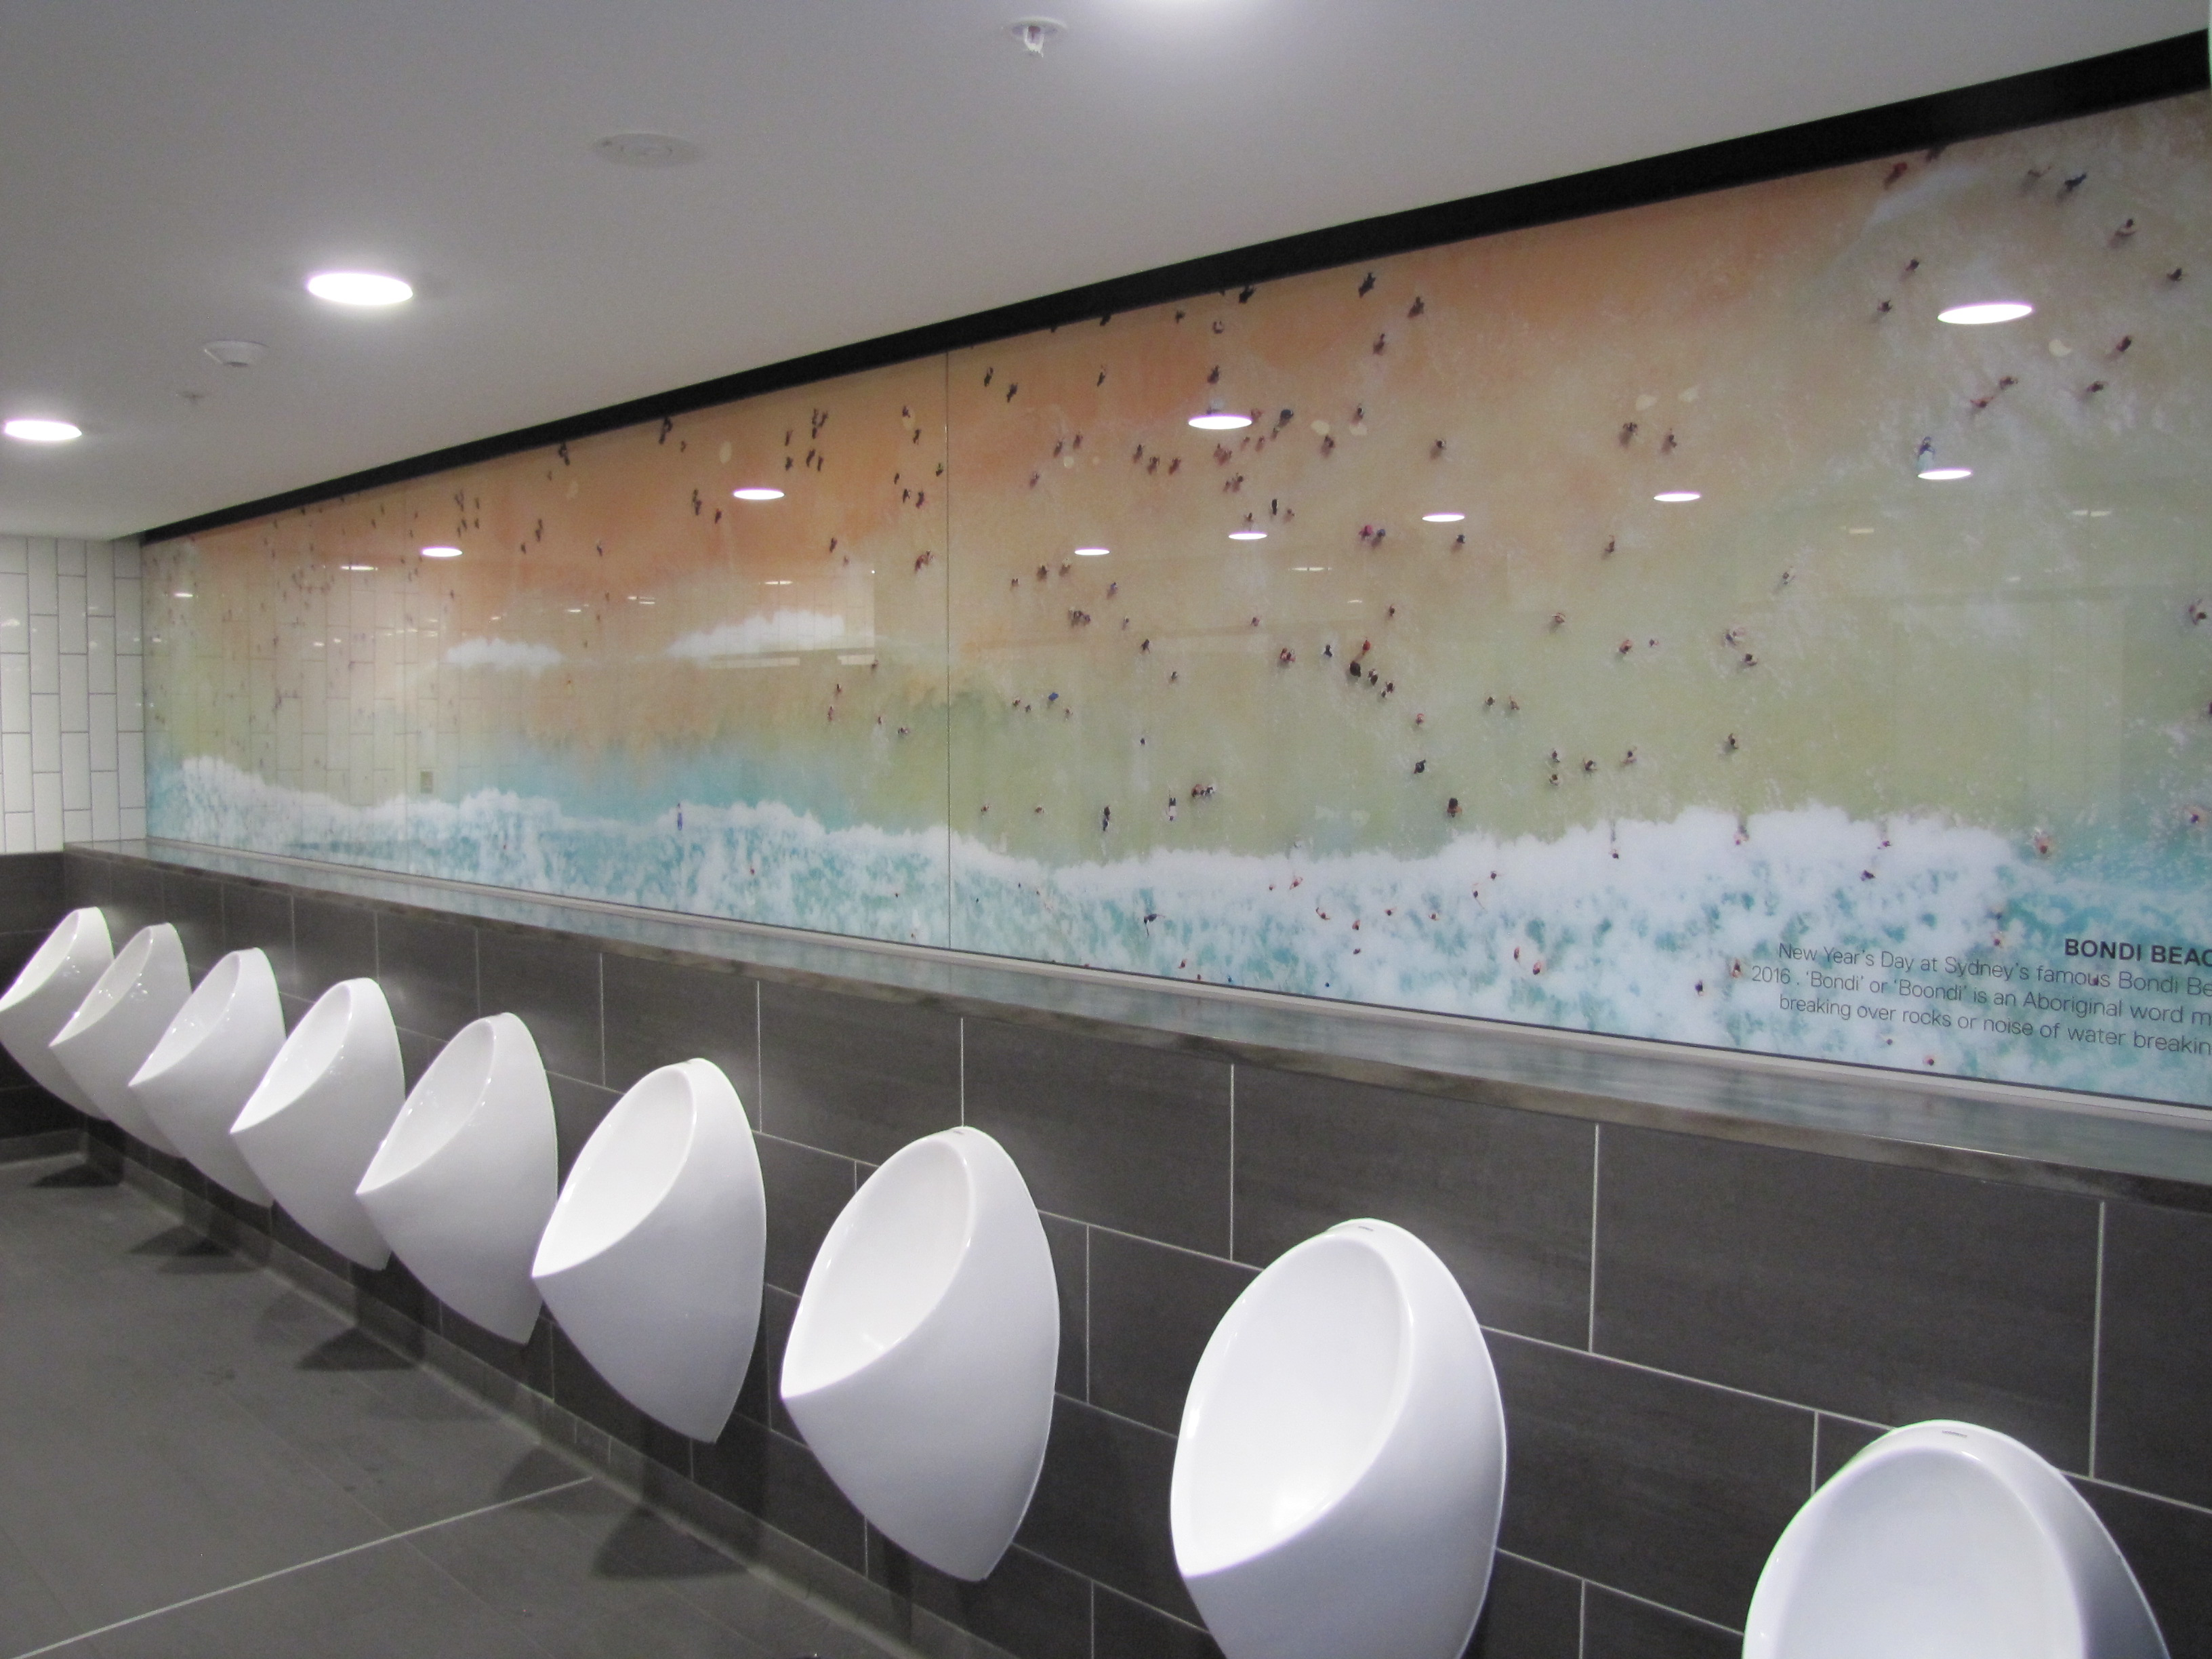 Australia's Best Bathroom Facility